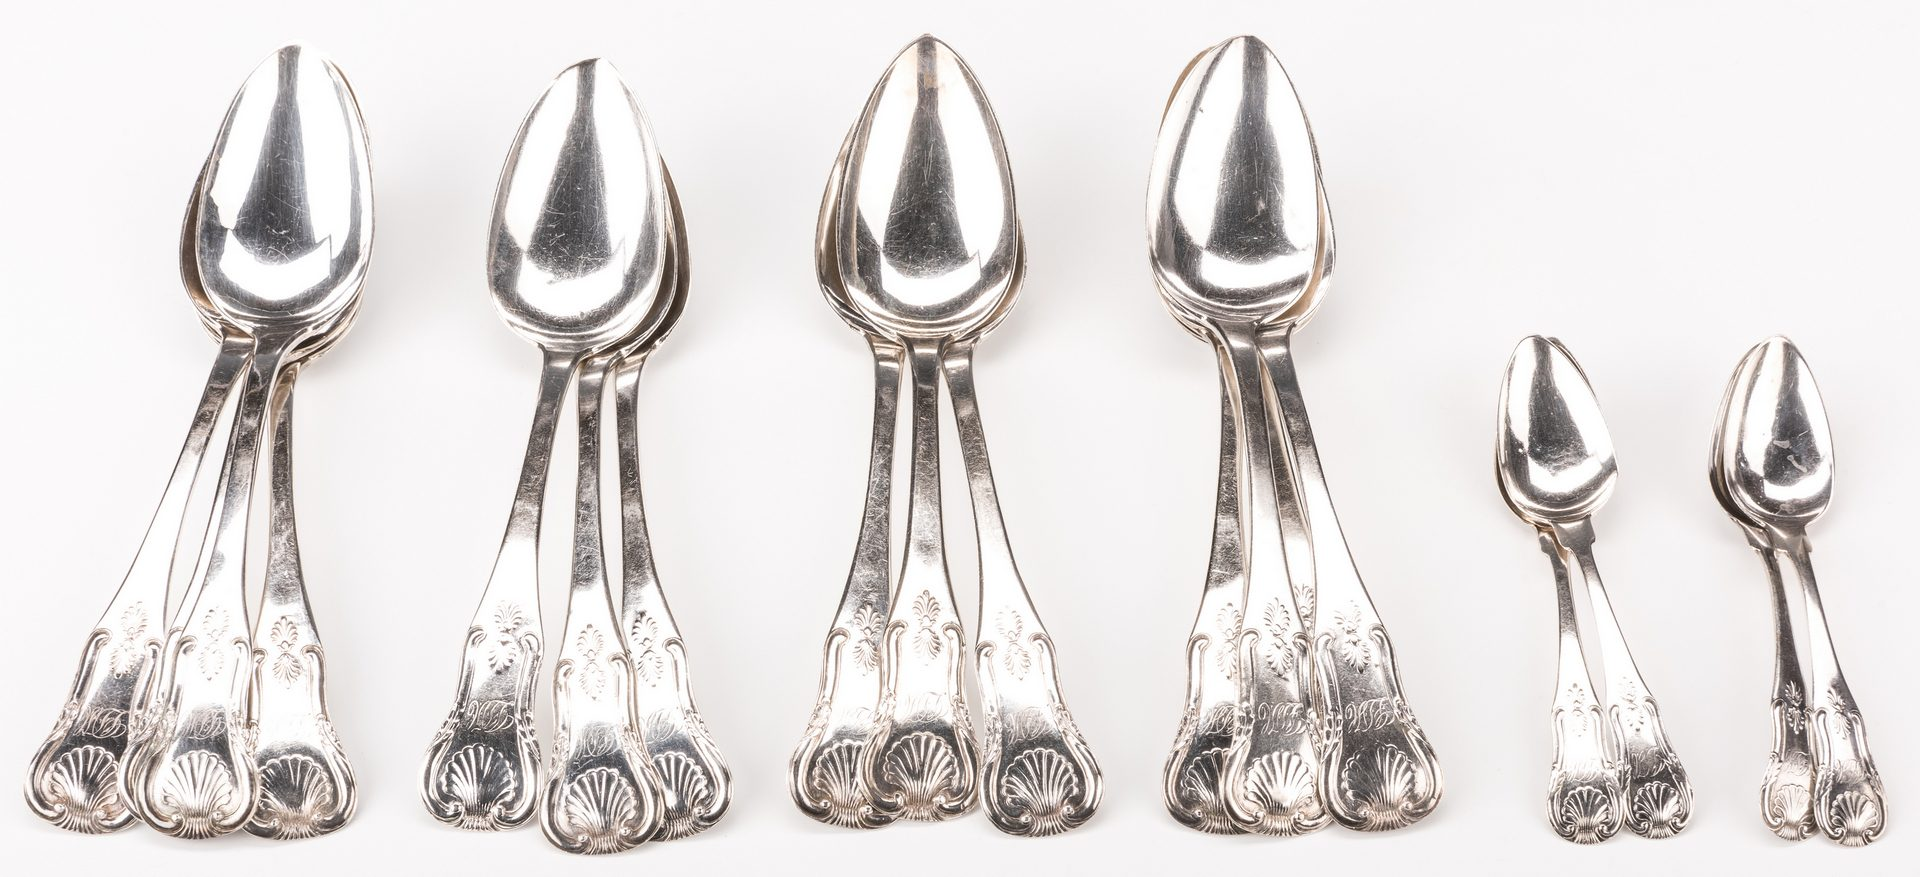 Lot 82: 14 Anthony Rasch Spoons plus 4 others